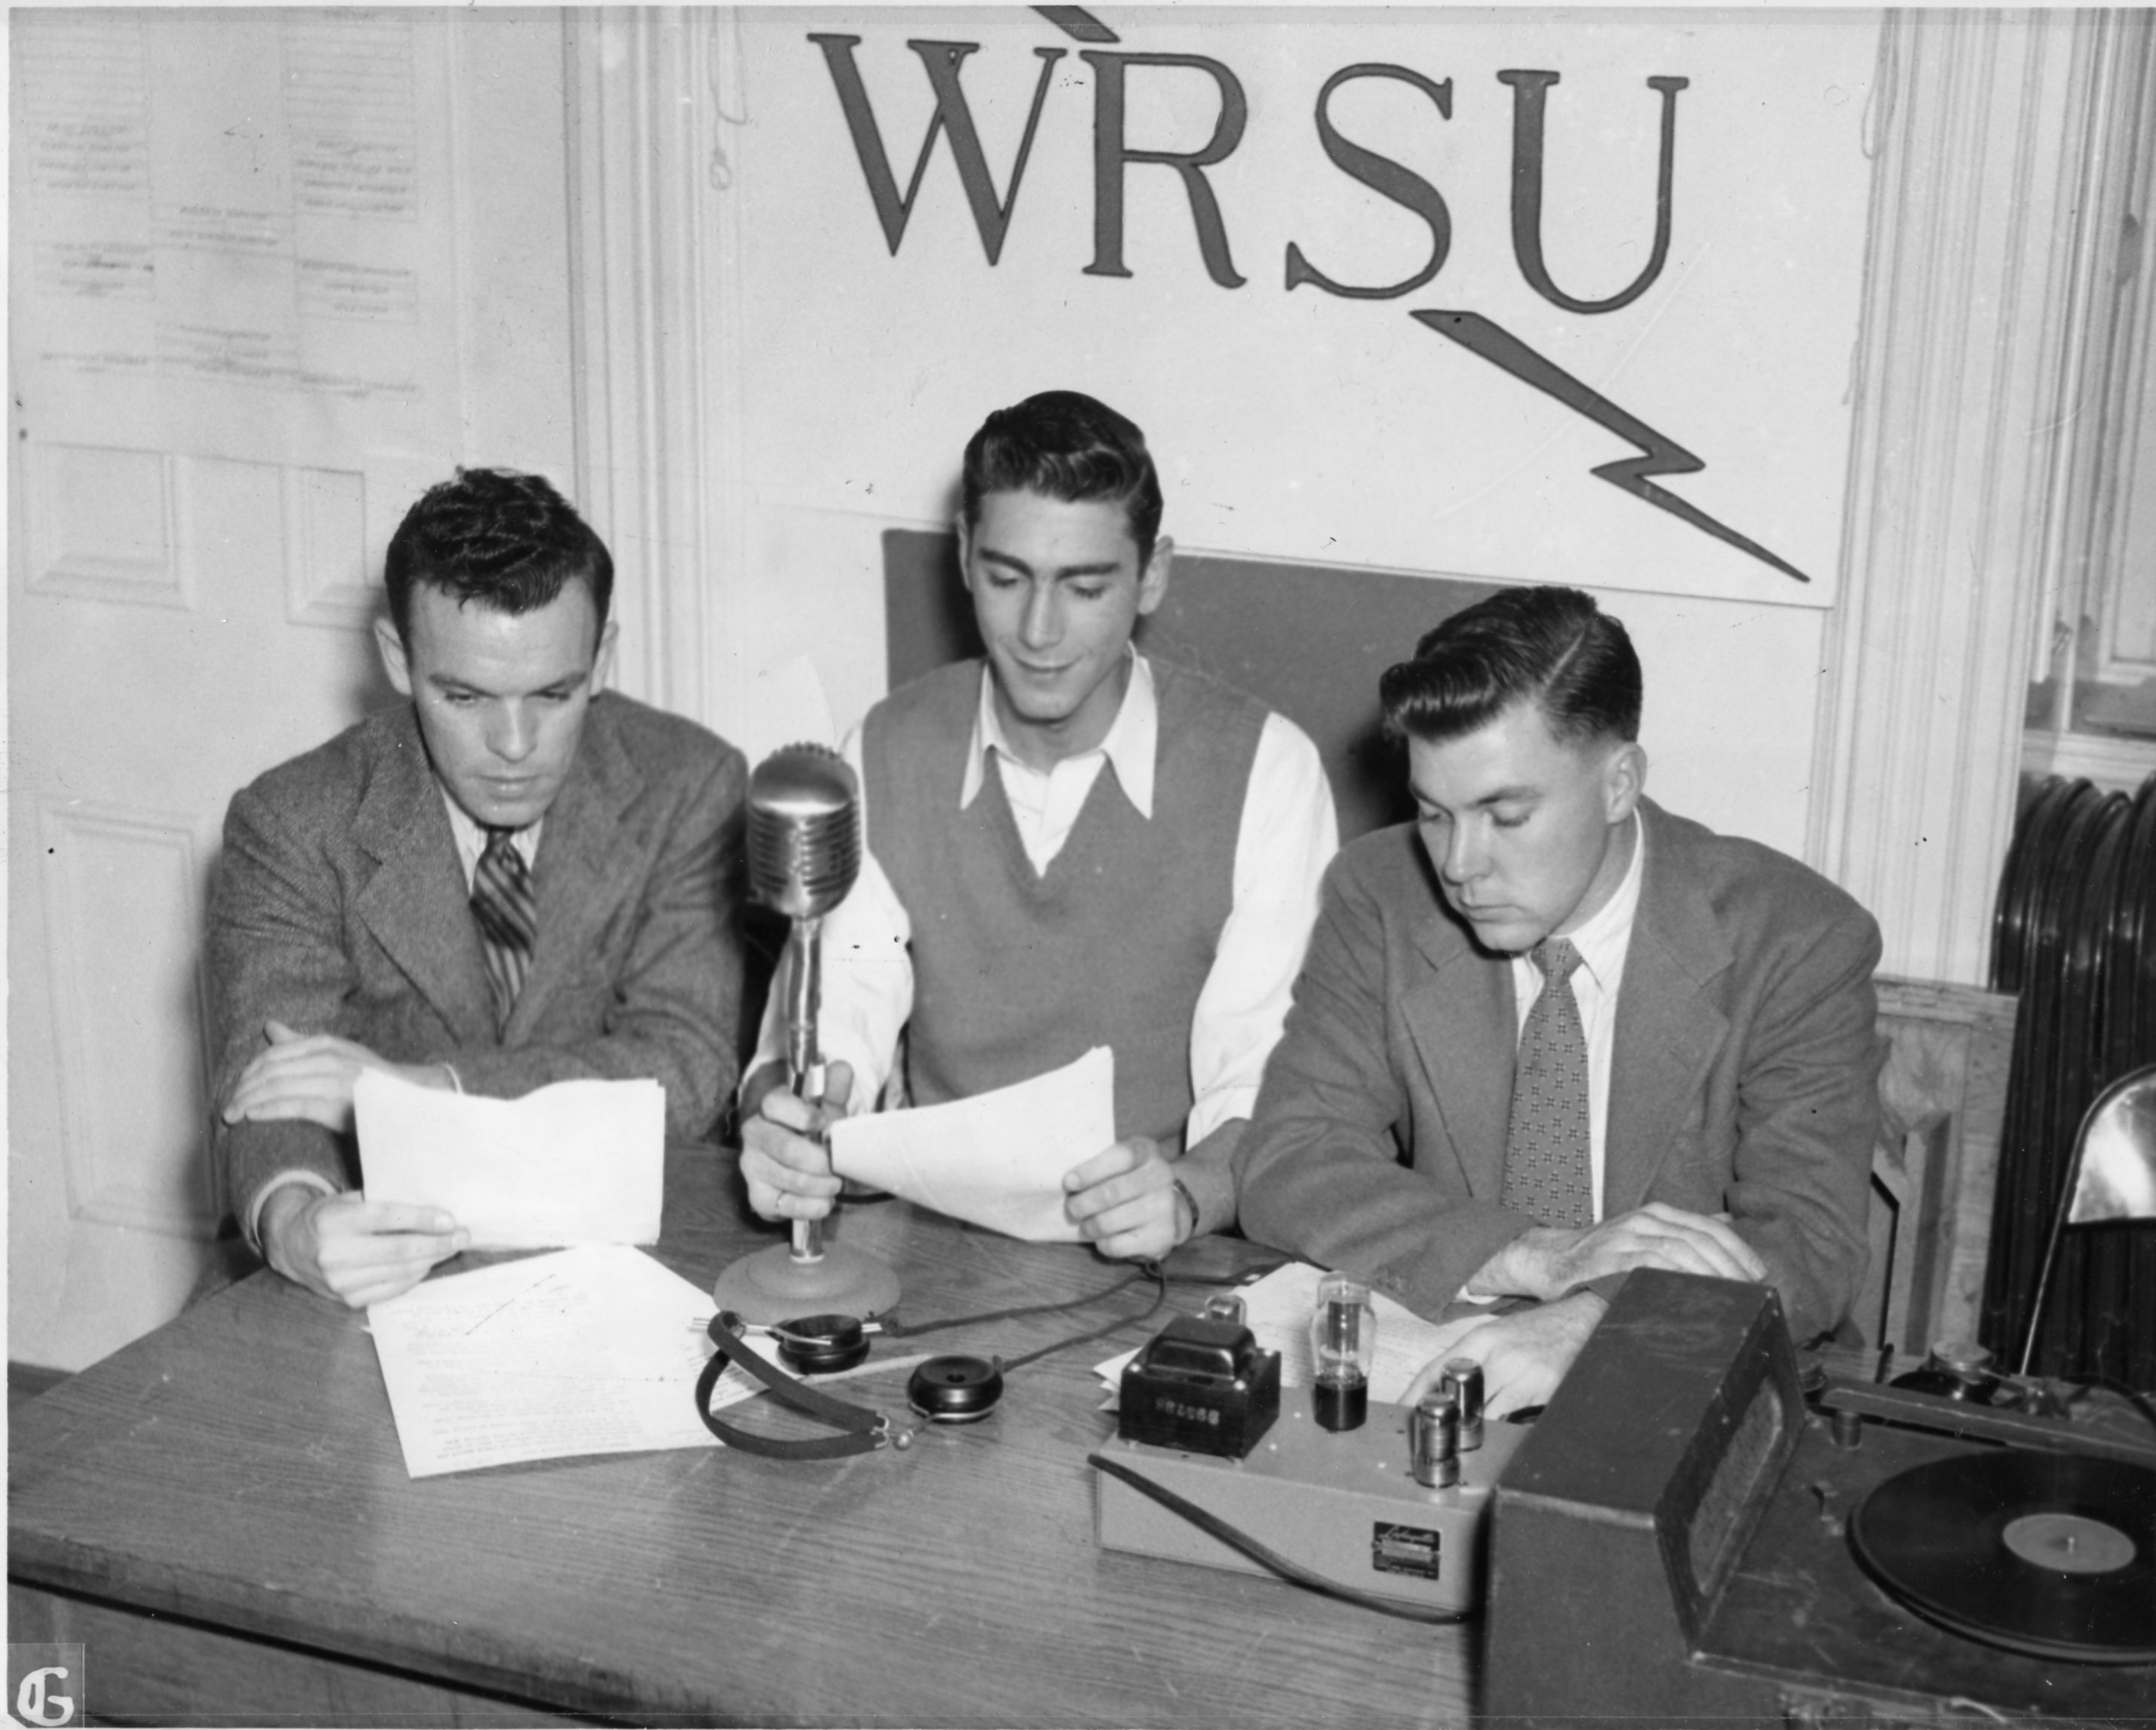 1948 - WRSU on the Air